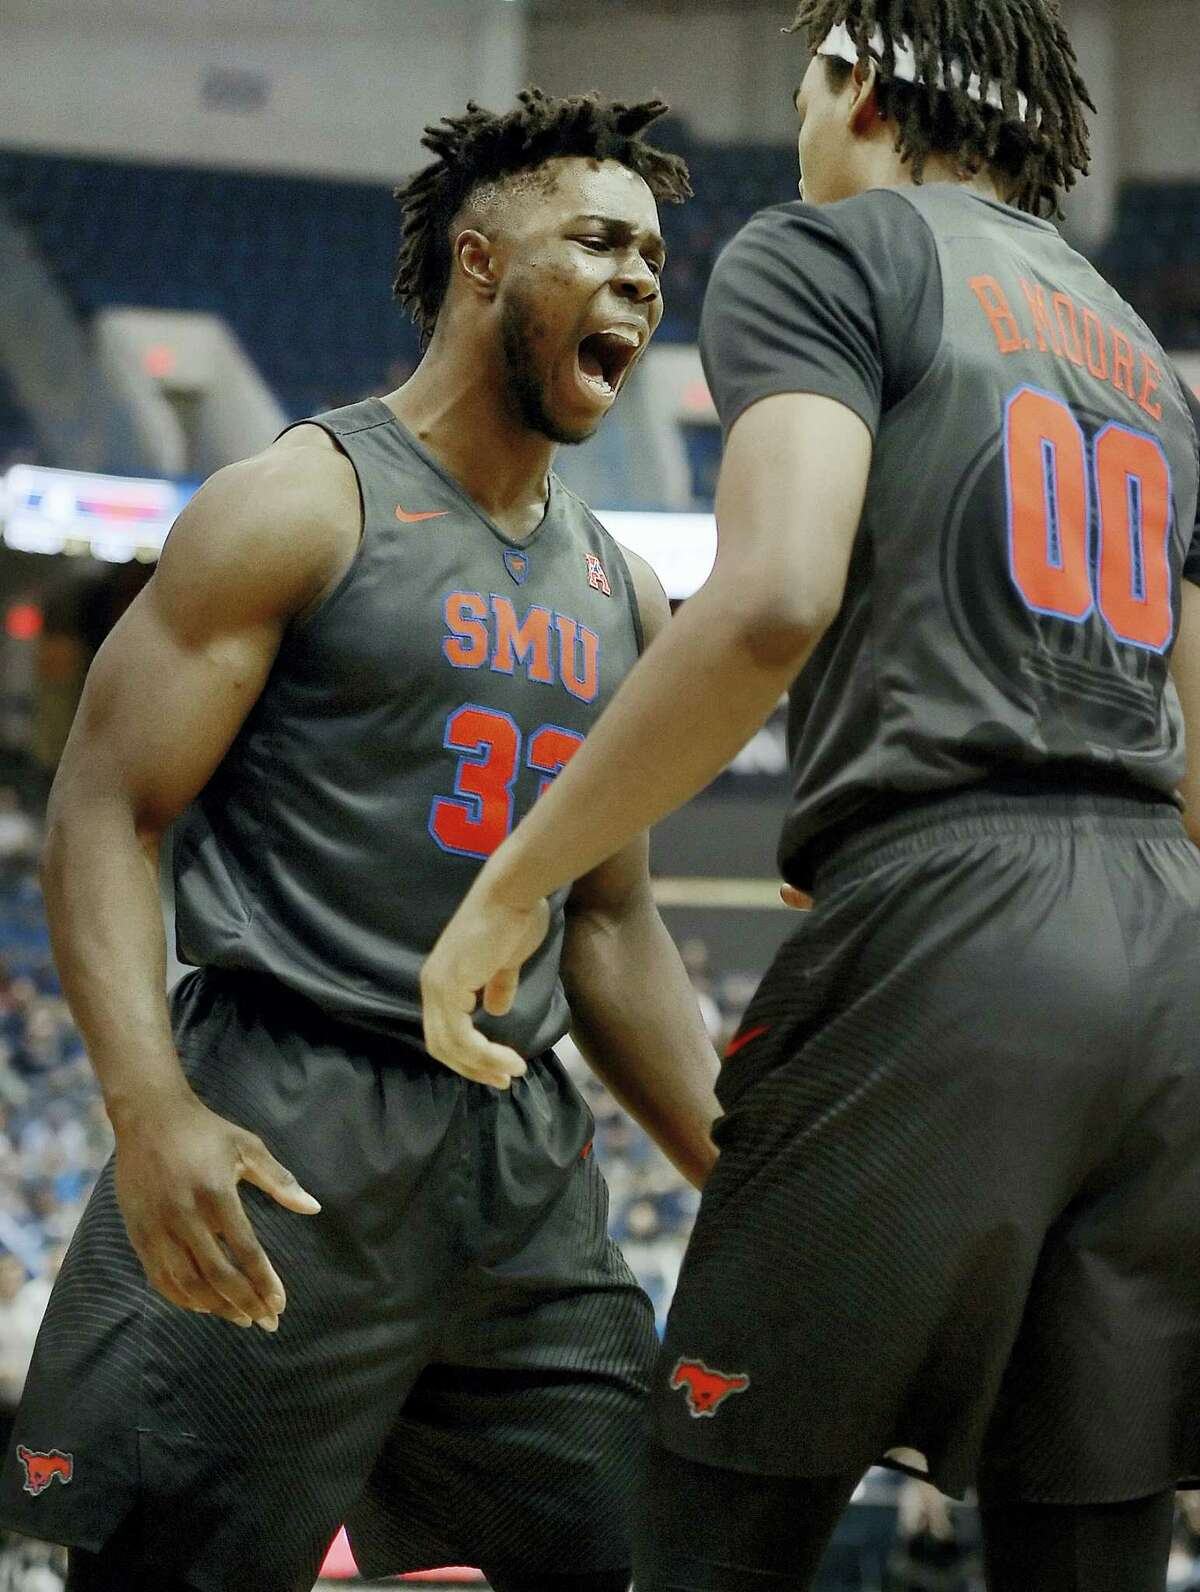 SMU's Semi Ojeleye, left, is David Borges' pick for AAC Player of the Year.